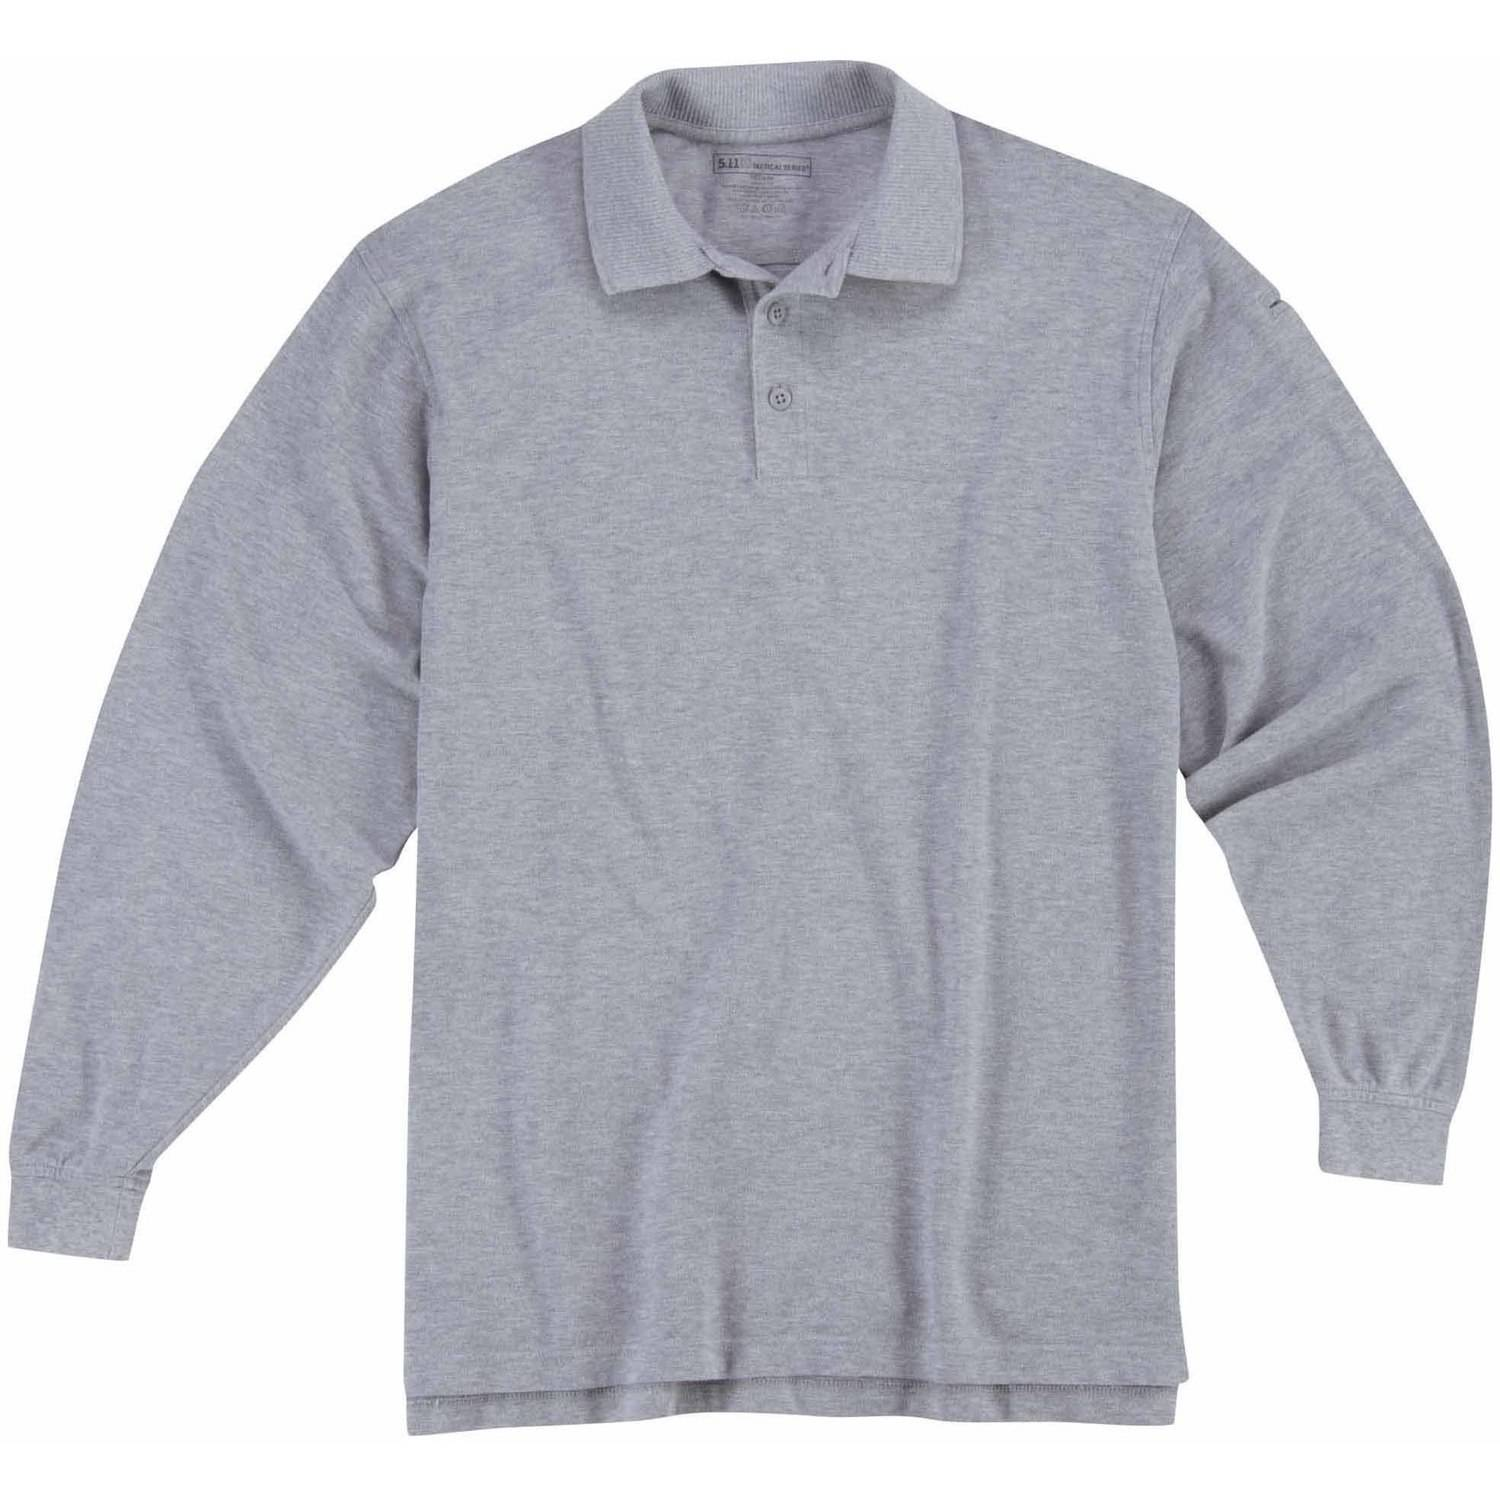 5.11 Tactical Long Sleeve Professional Polo Shirt, Heather Grey